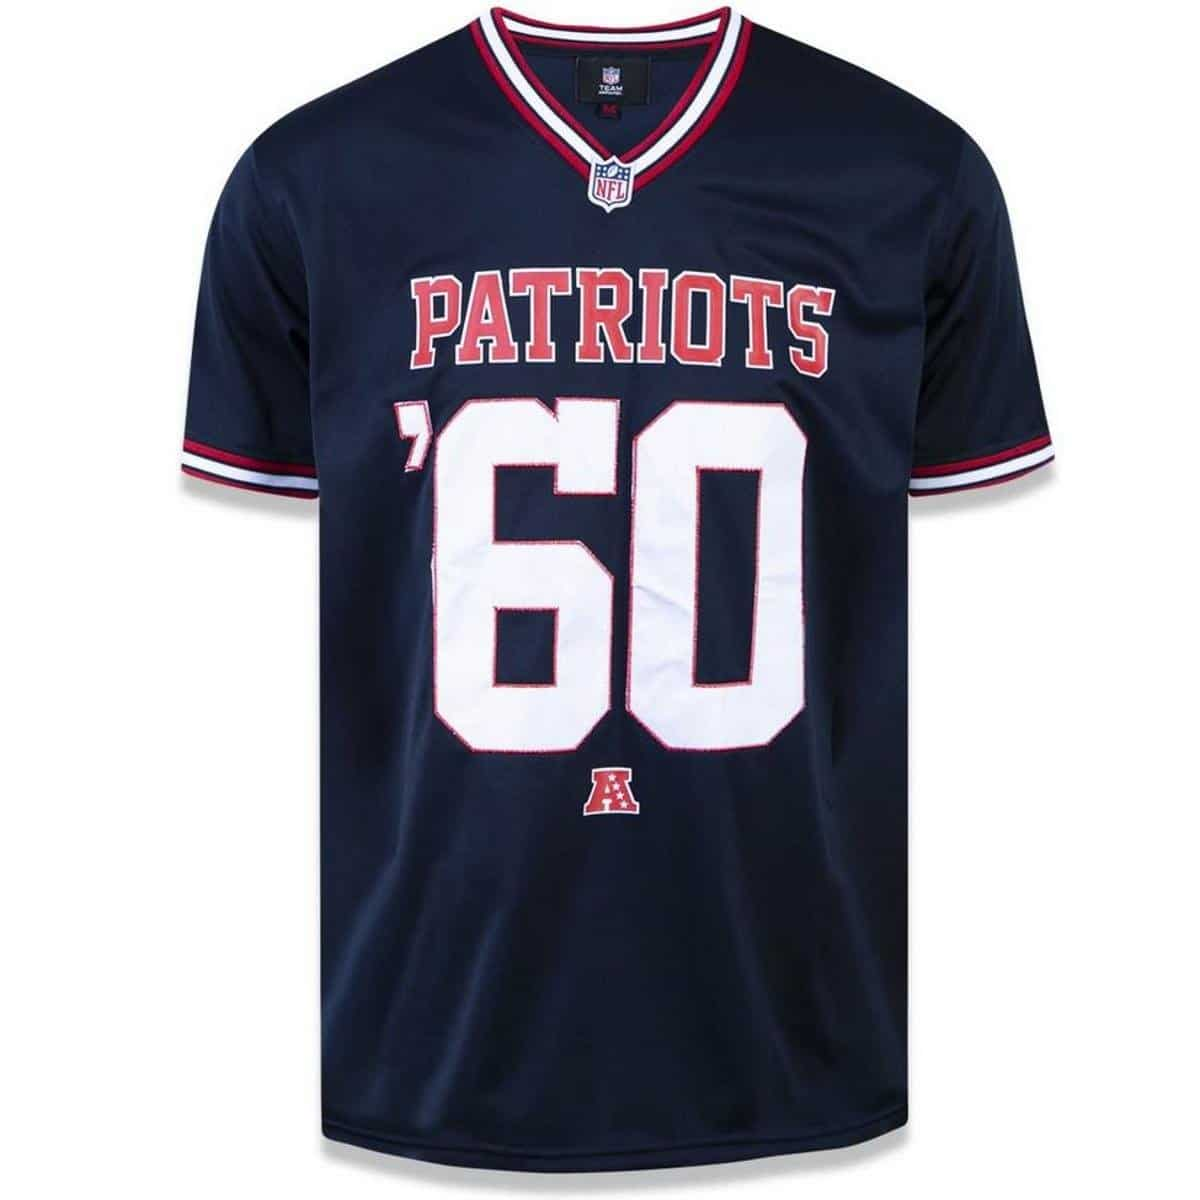 Camiseta do New England Patriots